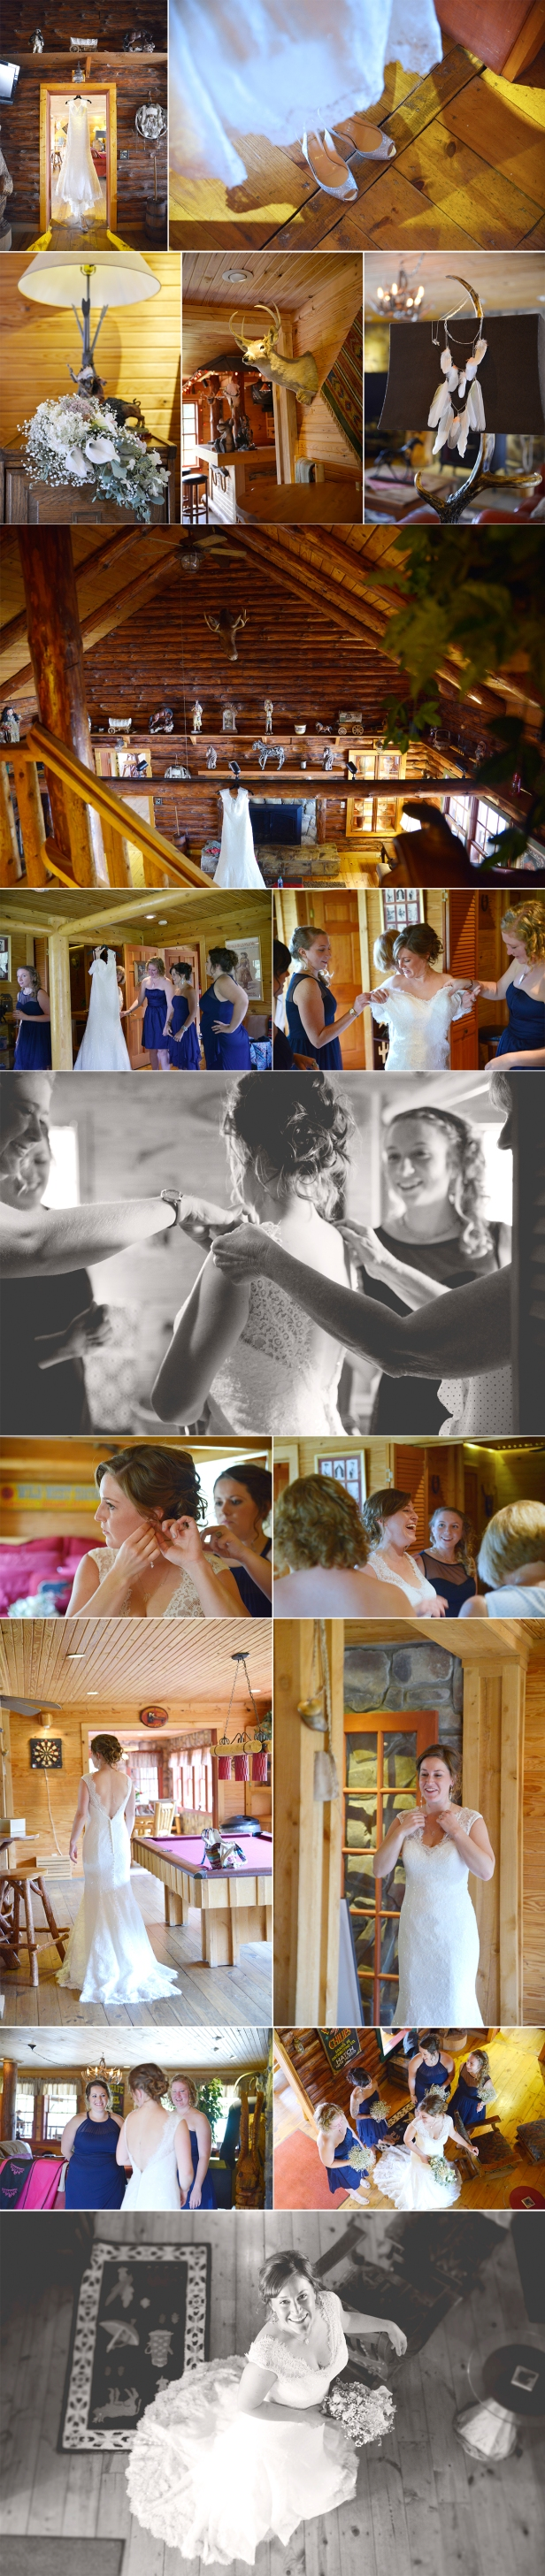 1-indian bear lodge ohio wedding